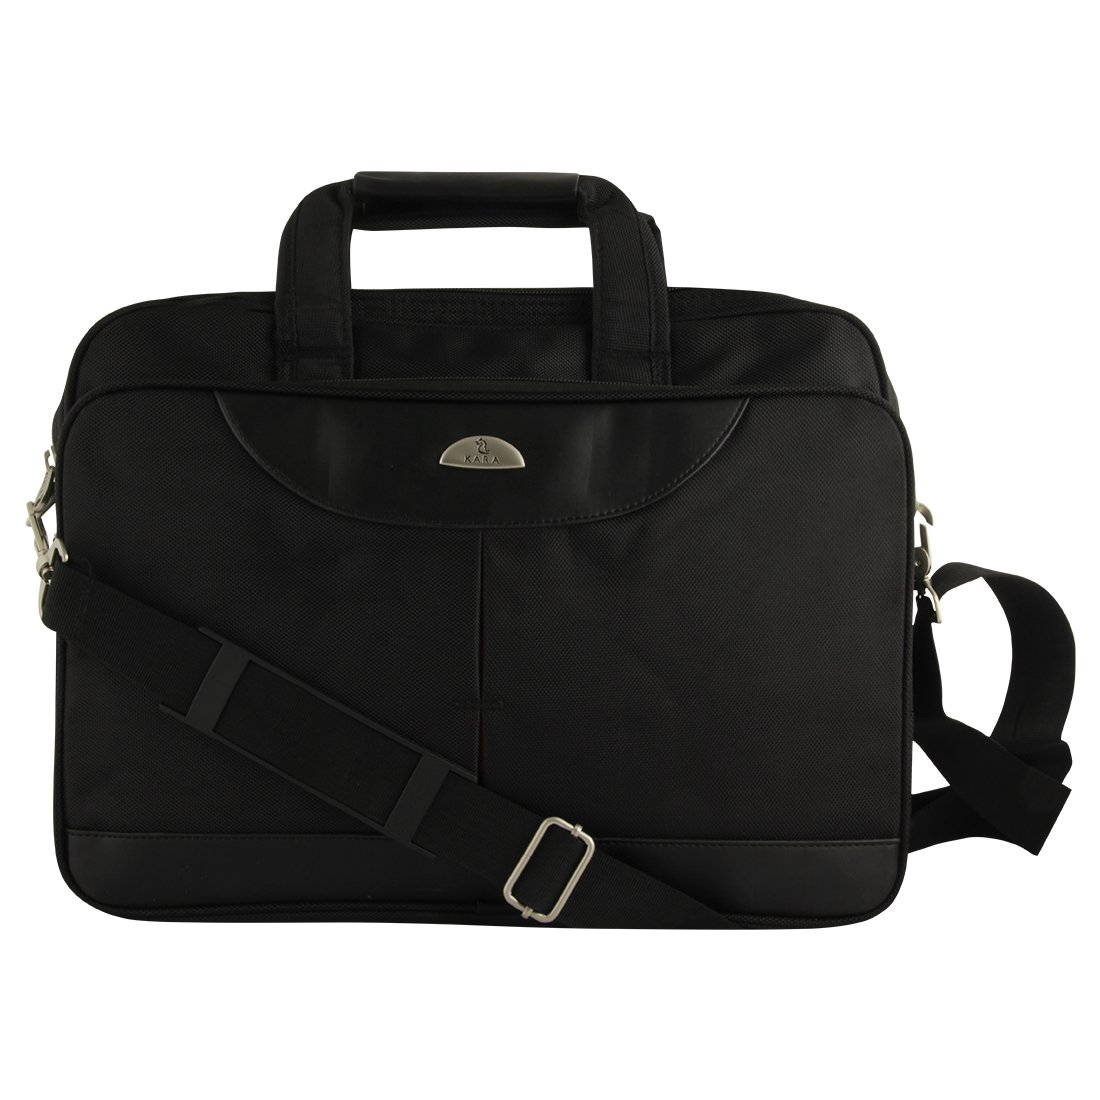 0aa0cce932 Kara Black Color Unisex Laptop Bag  Amazon.in  Bags